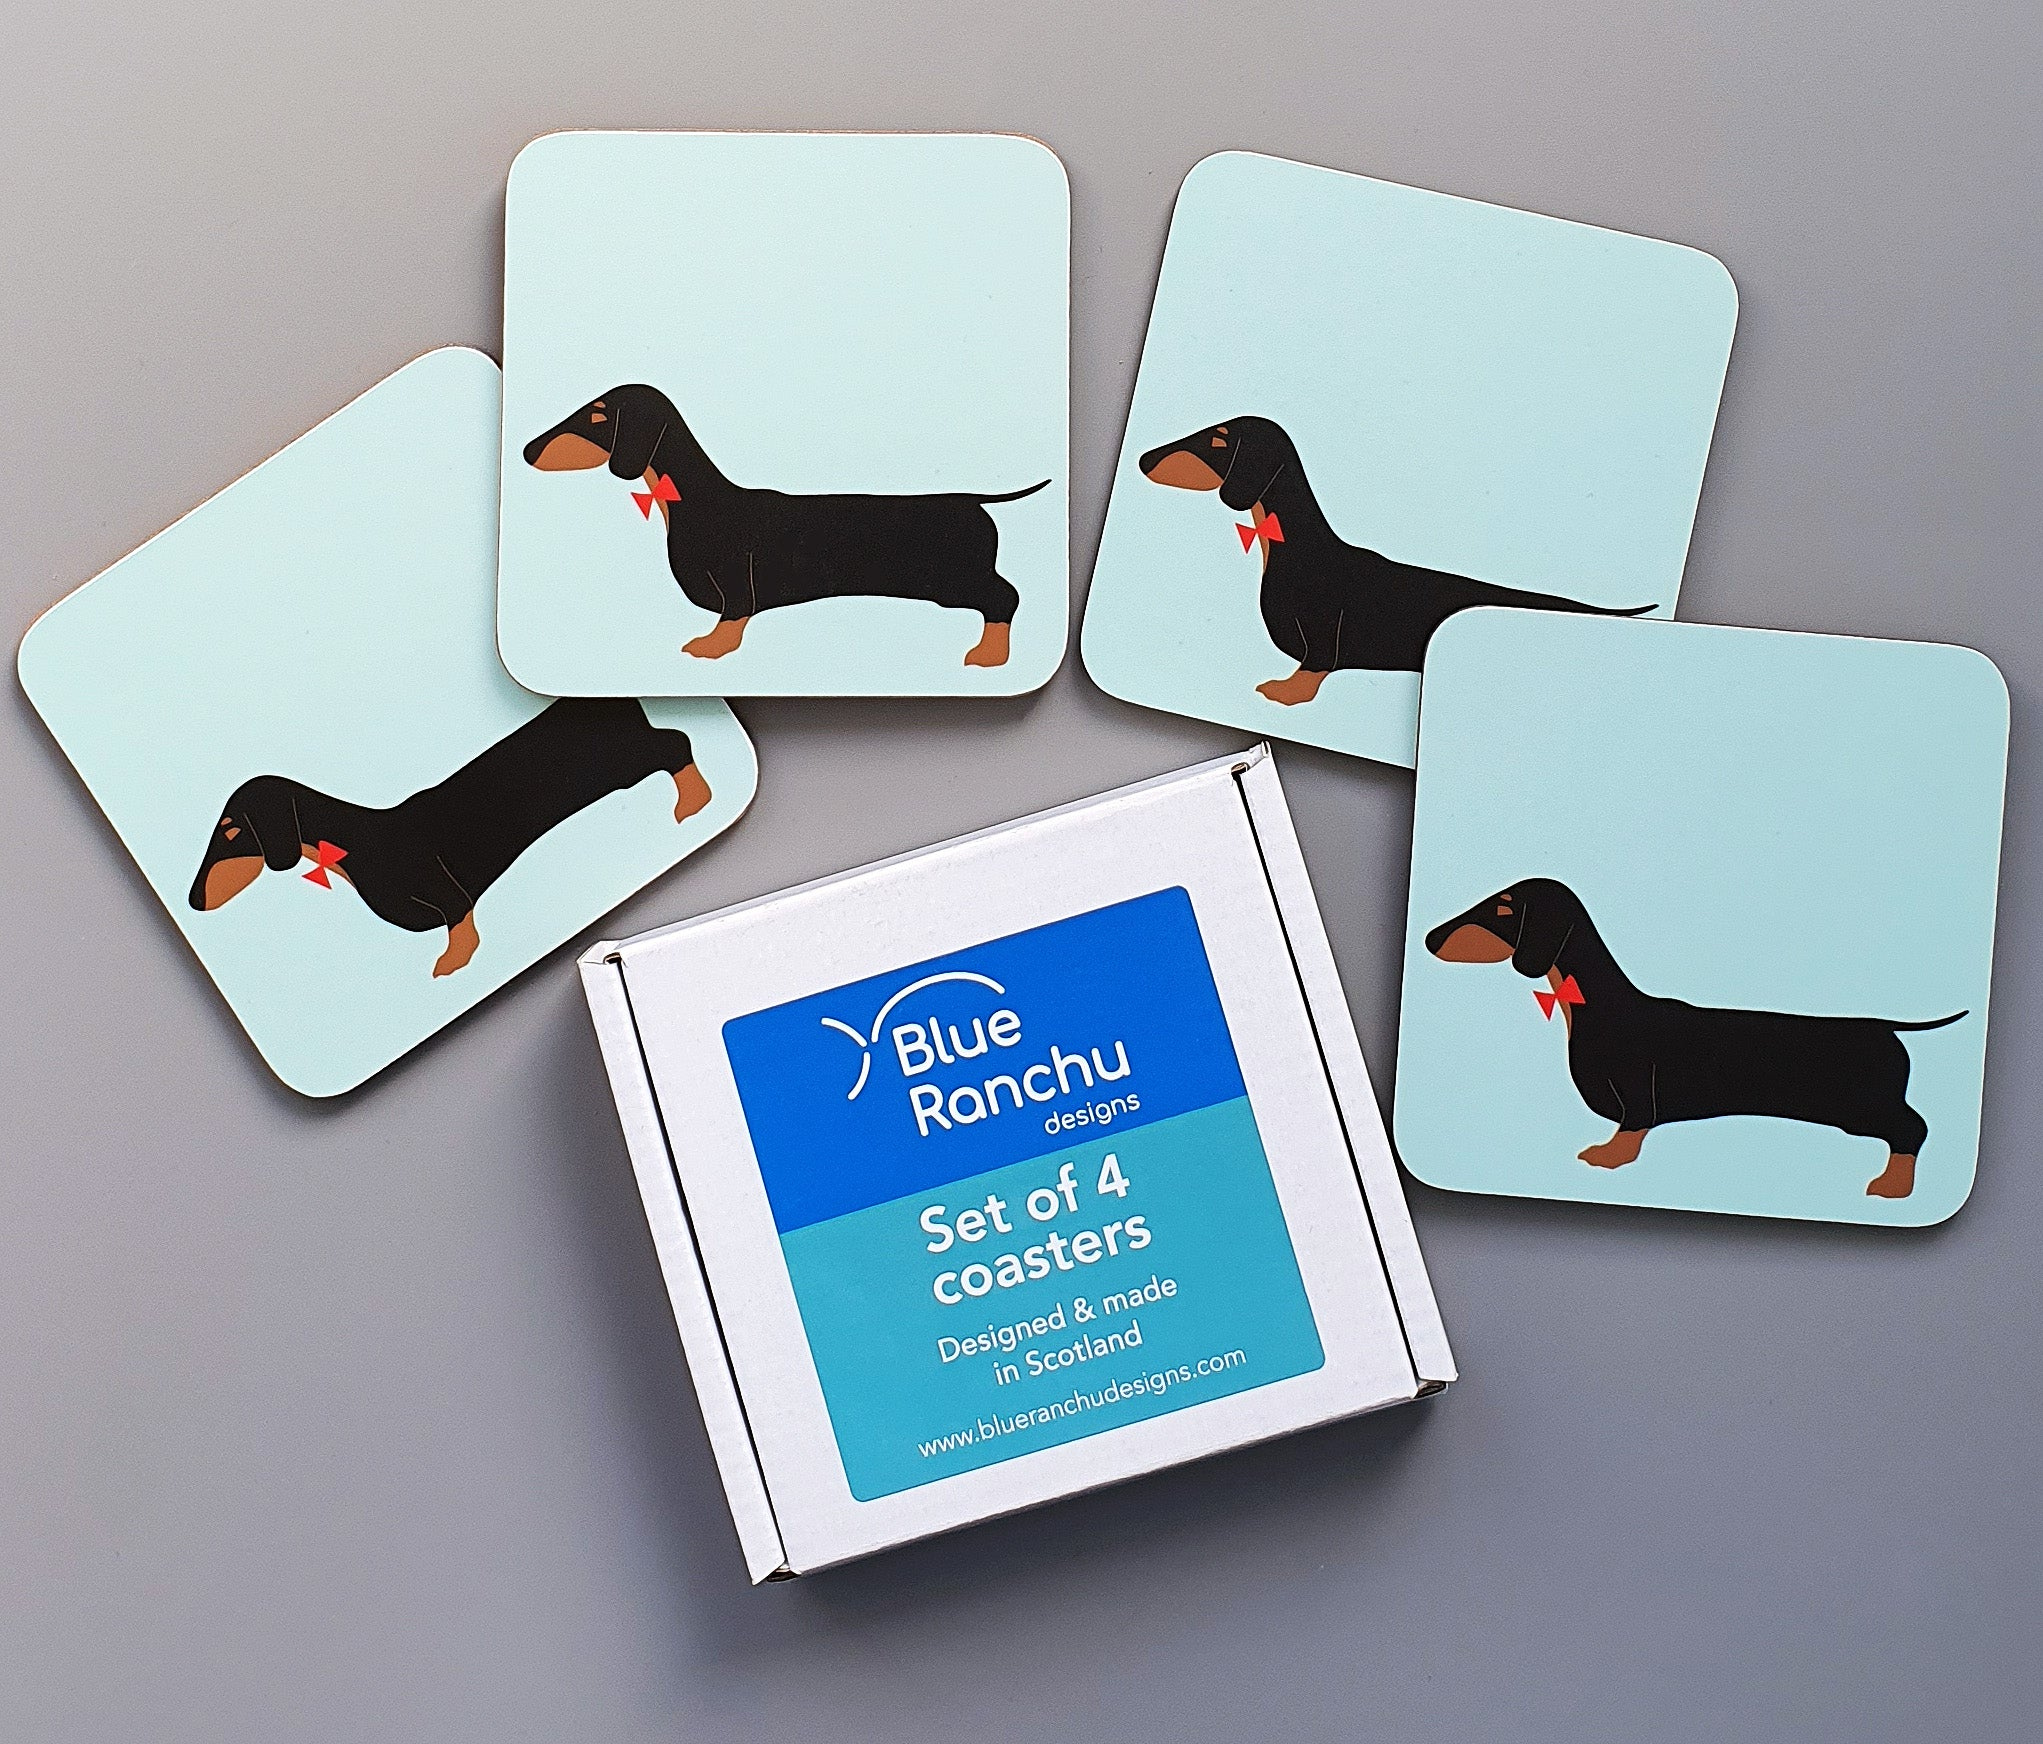 Dachshund coaster set in cardboard gift box